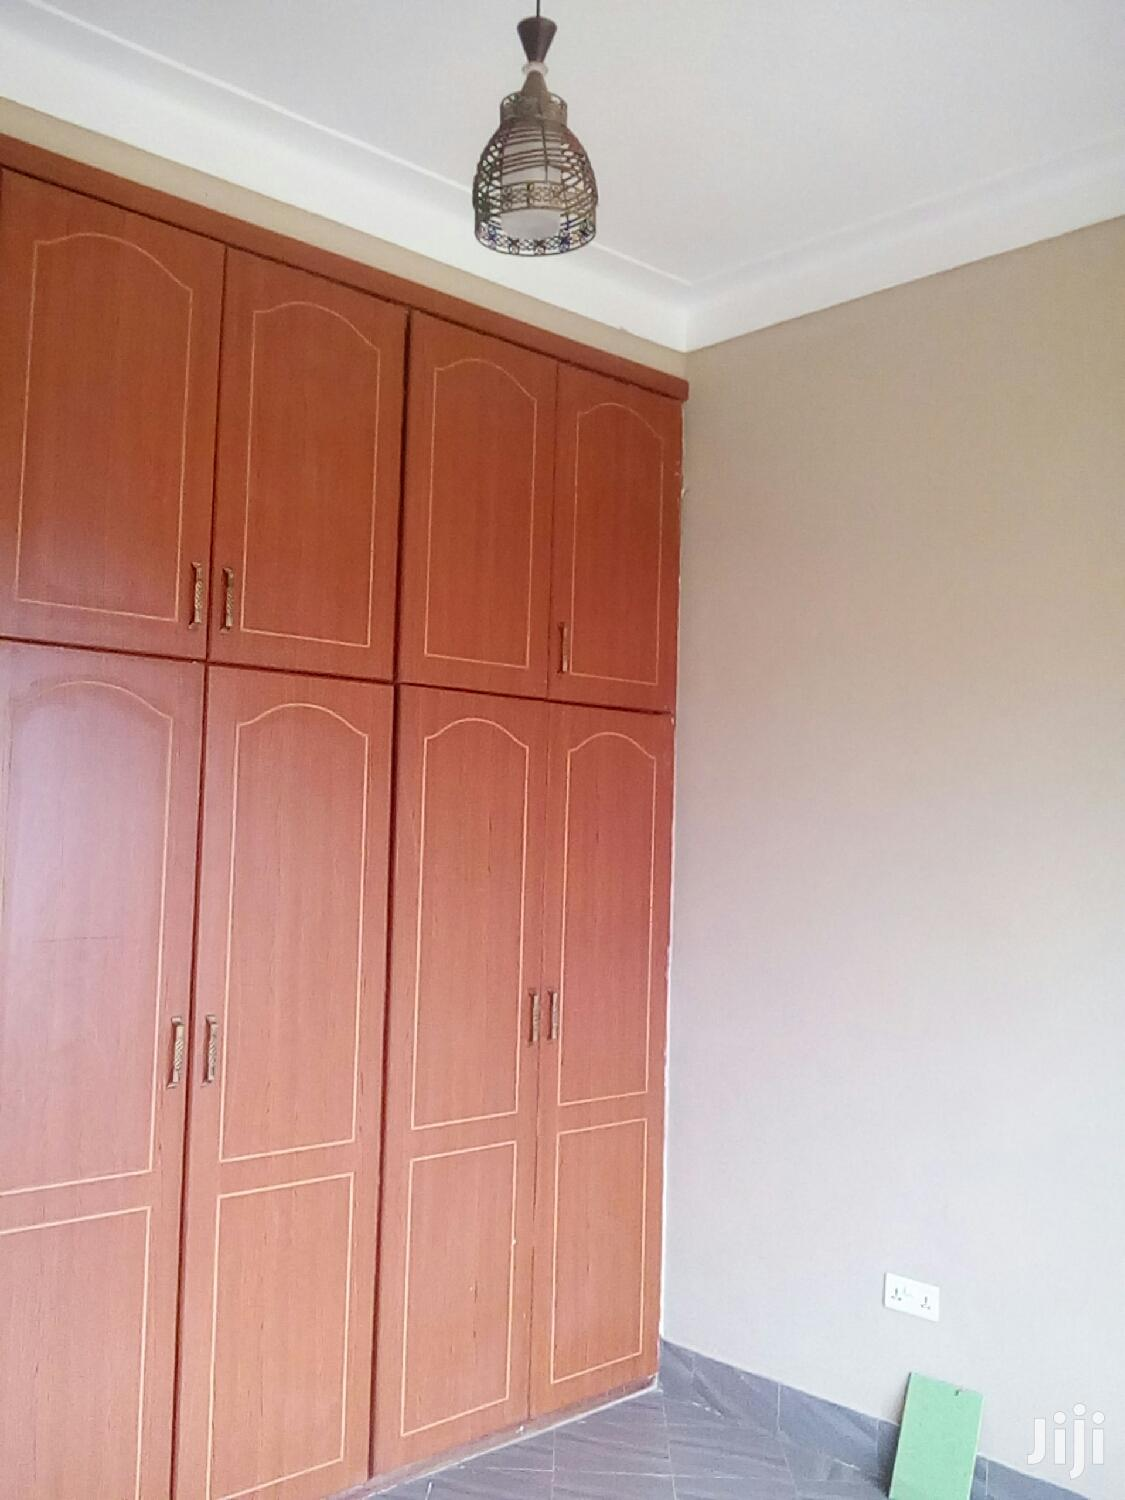 Kiwatule 2bedroom Apartment For Rent | Houses & Apartments For Rent for sale in Kampala, Central Region, Uganda